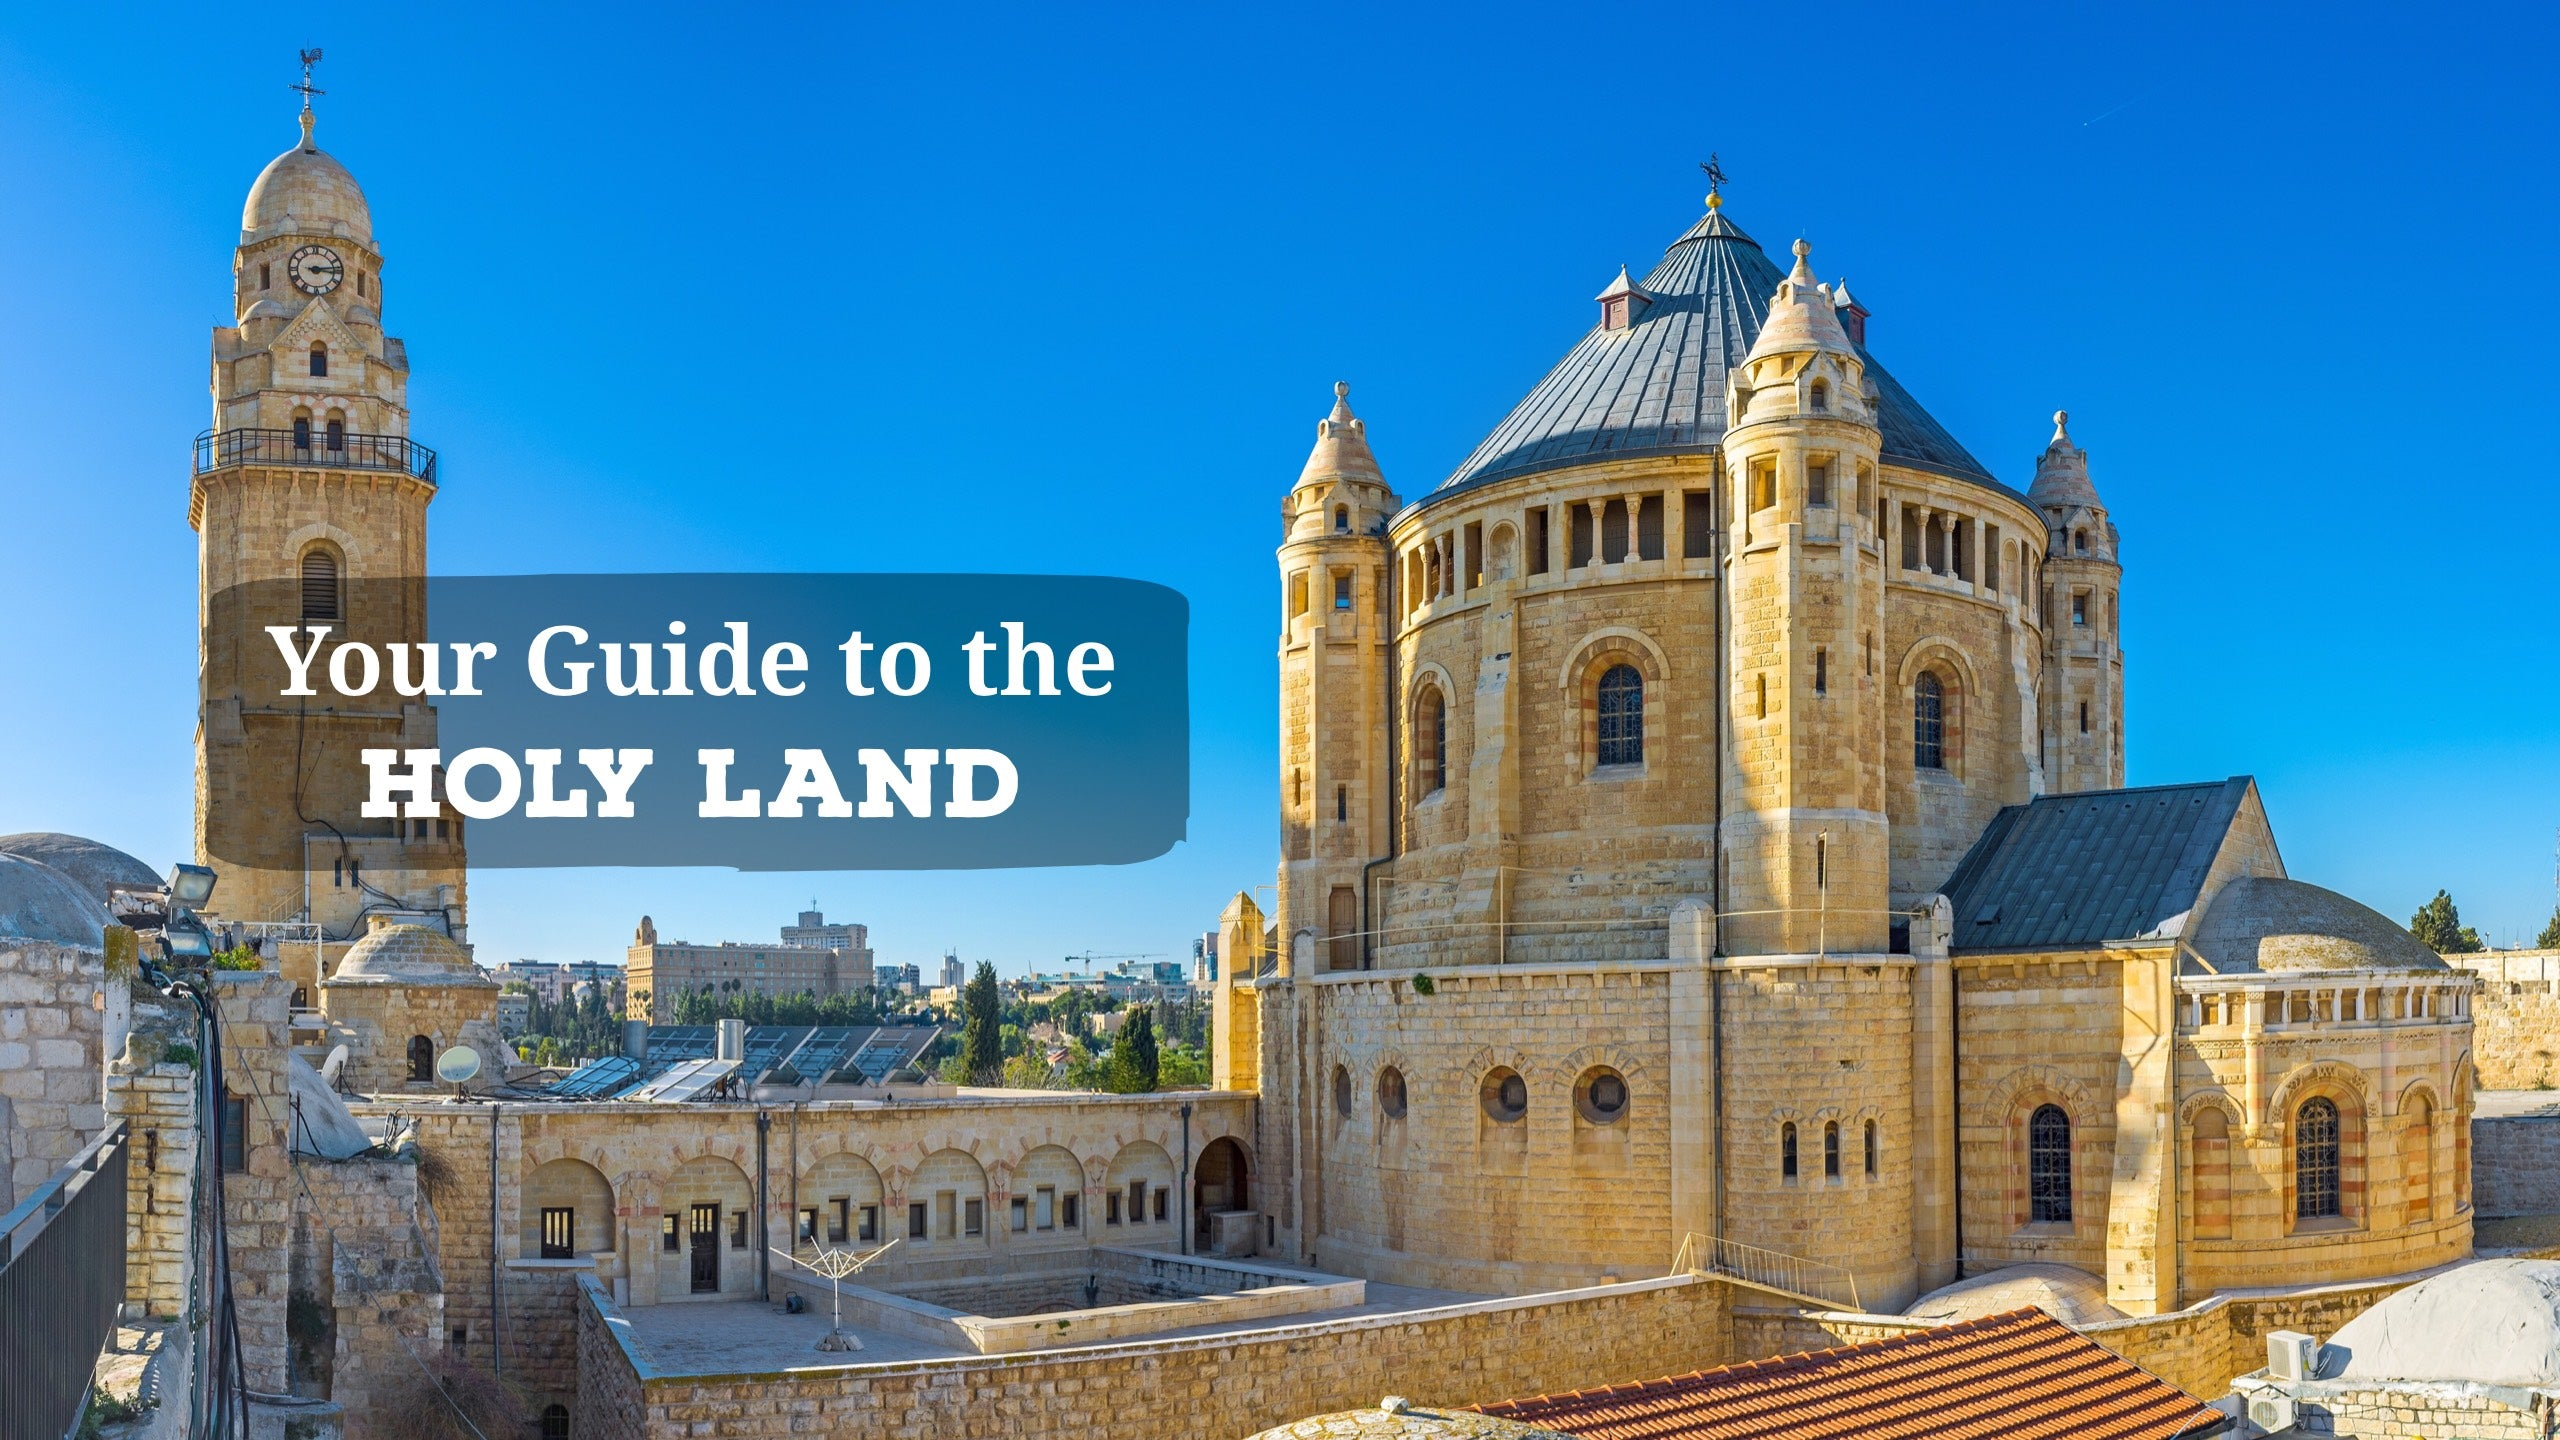 Your Guide to the Holy Land